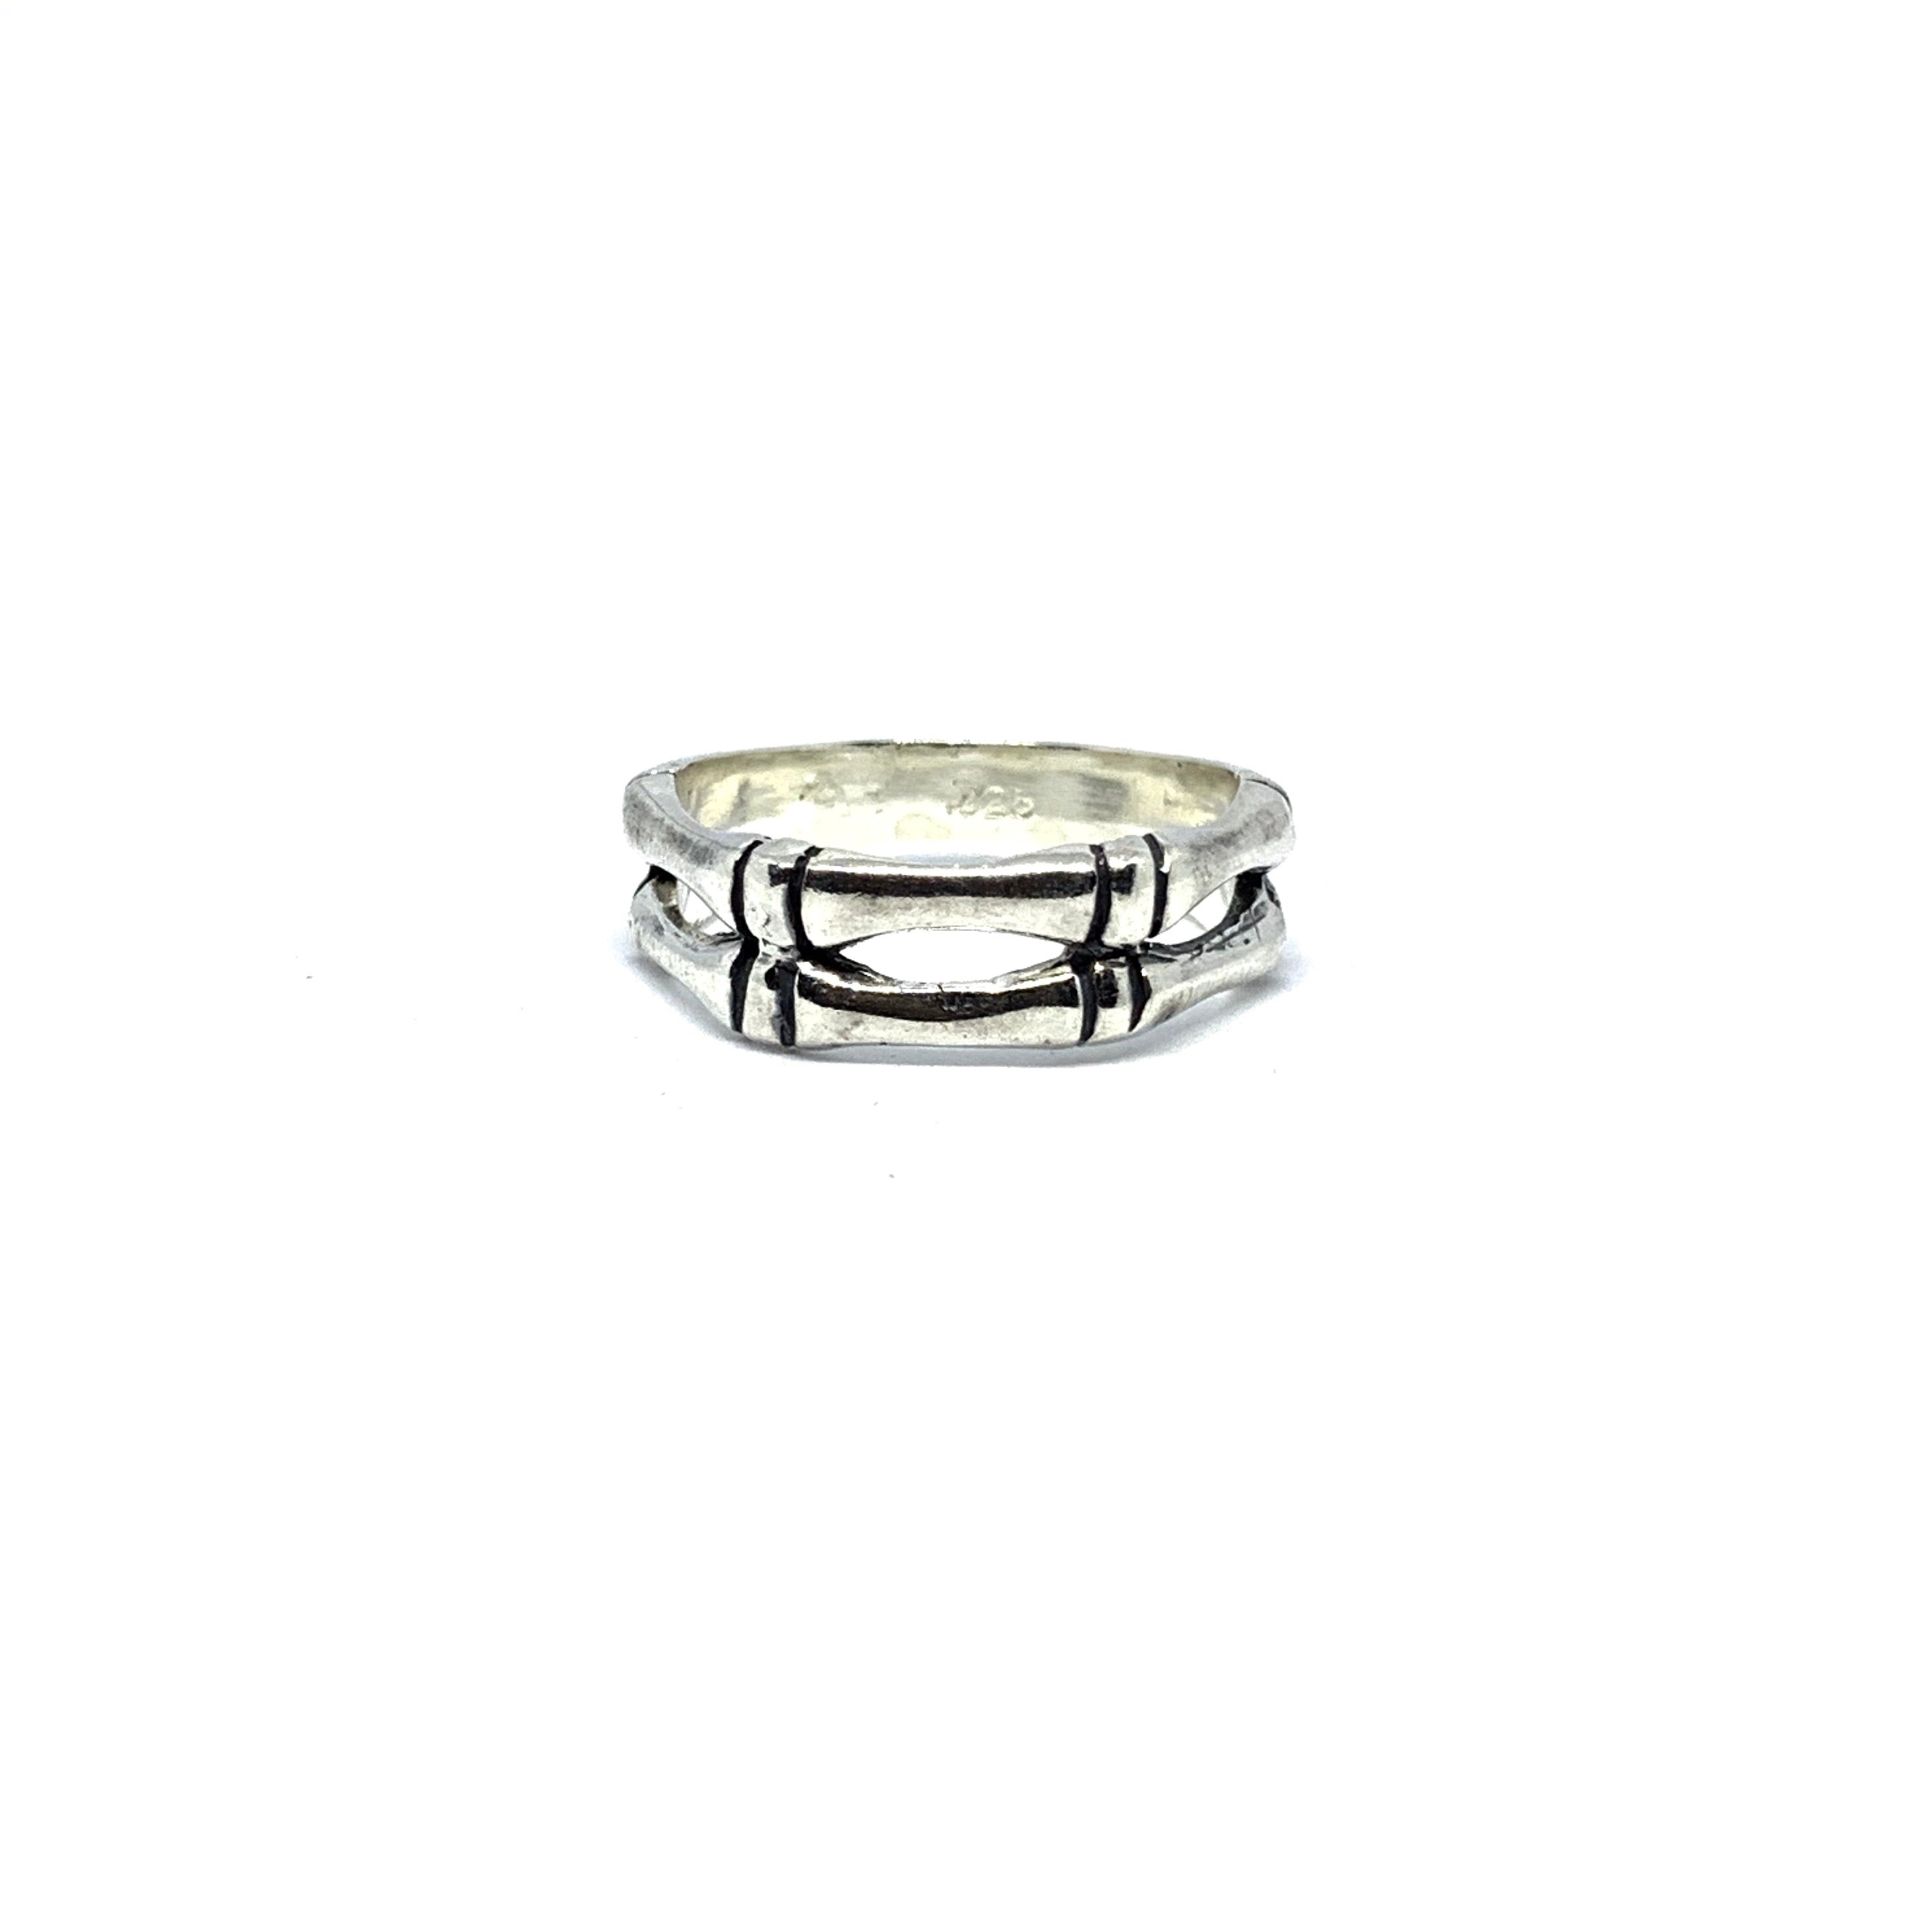 STERLING SILVER BONE RING - SEAMS JEWELRY